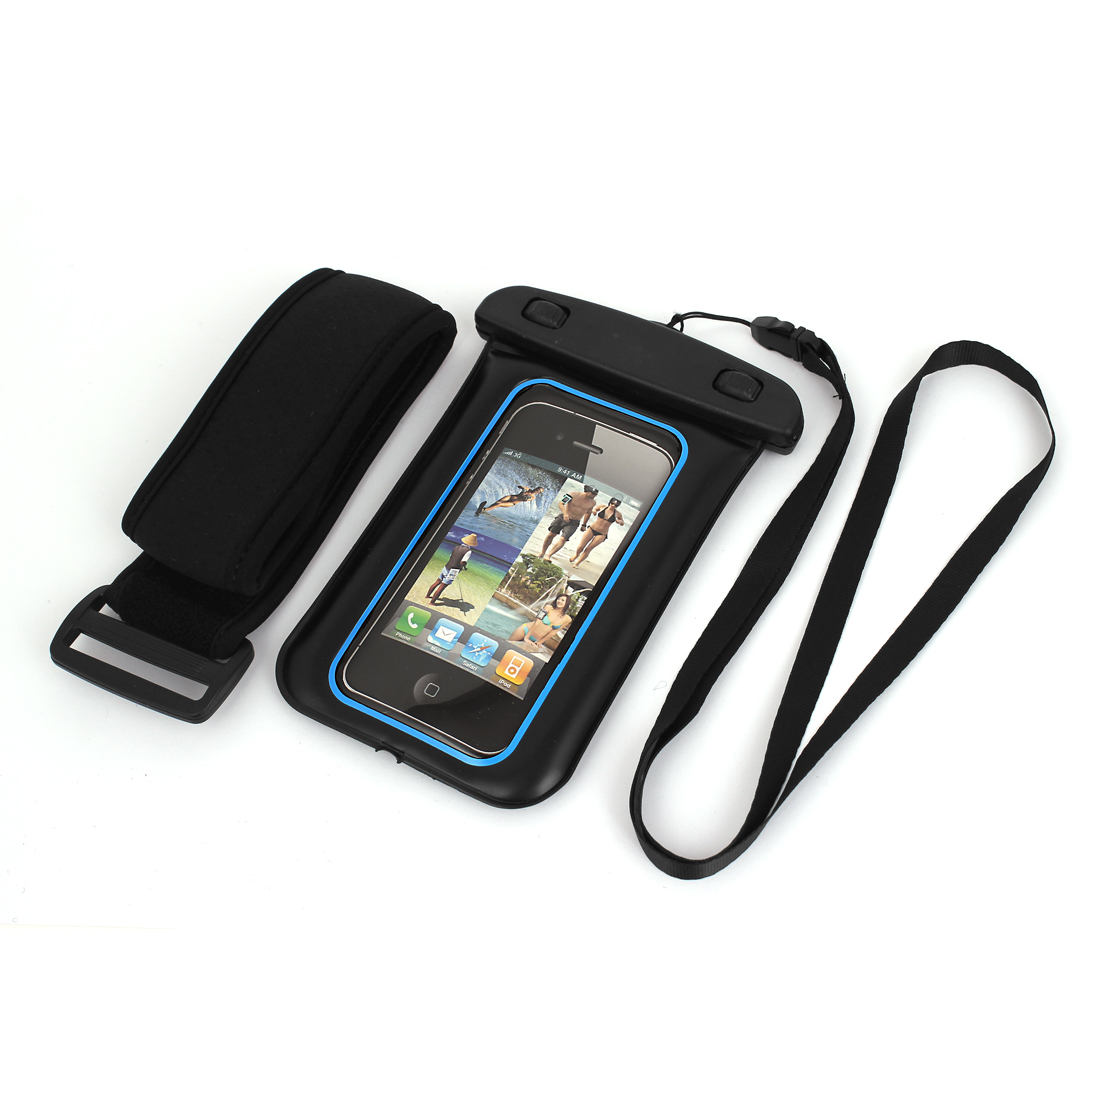 Waterproof Case Dry Bag Skin Cover Pouch Sleeve Black Blue for iPhone 5 5C 5S